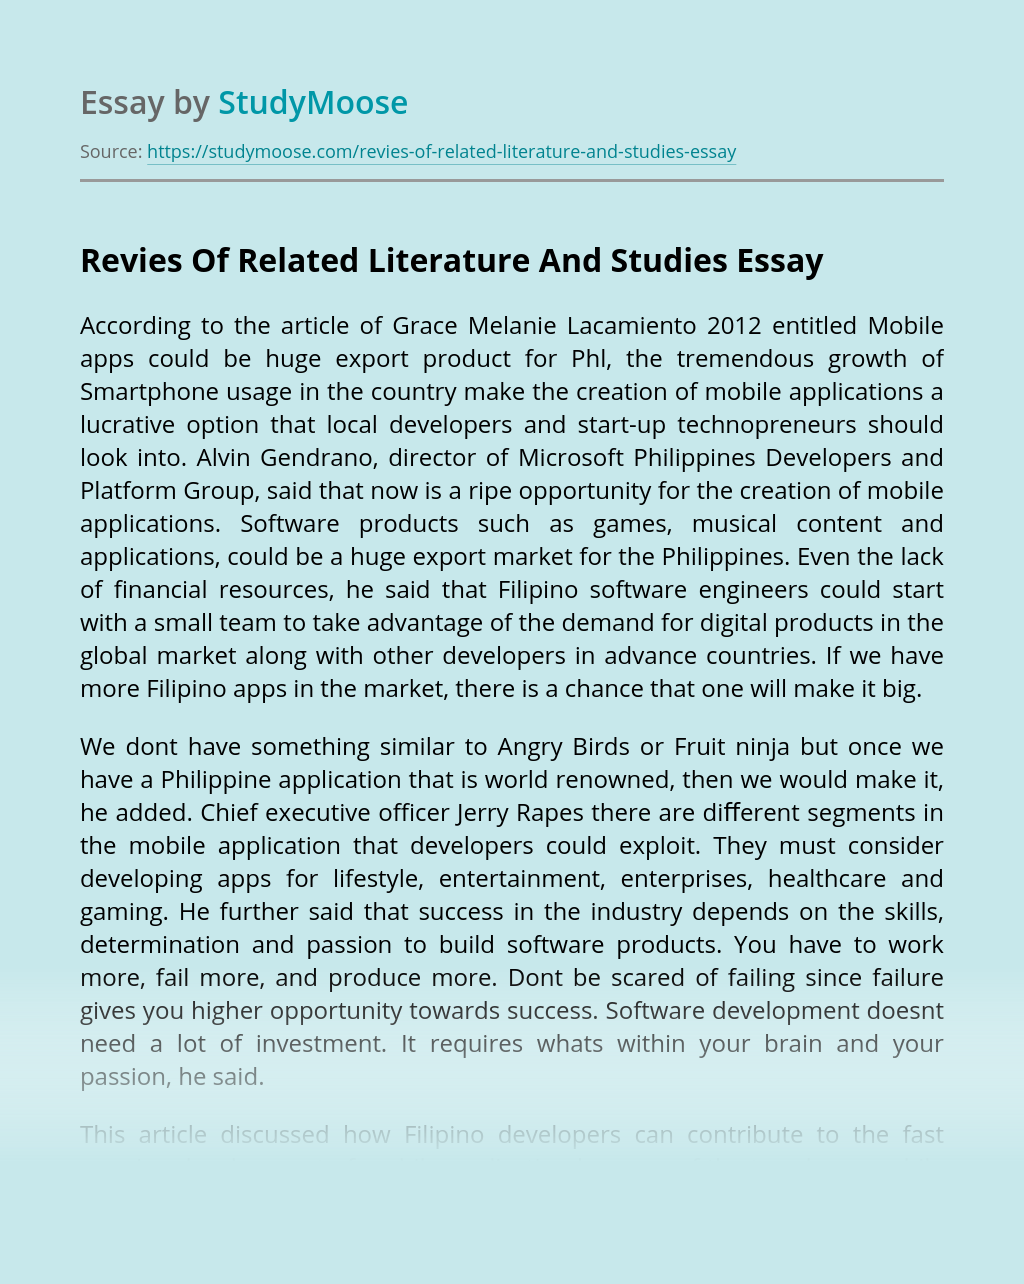 Revies Of Related Literature And Studies